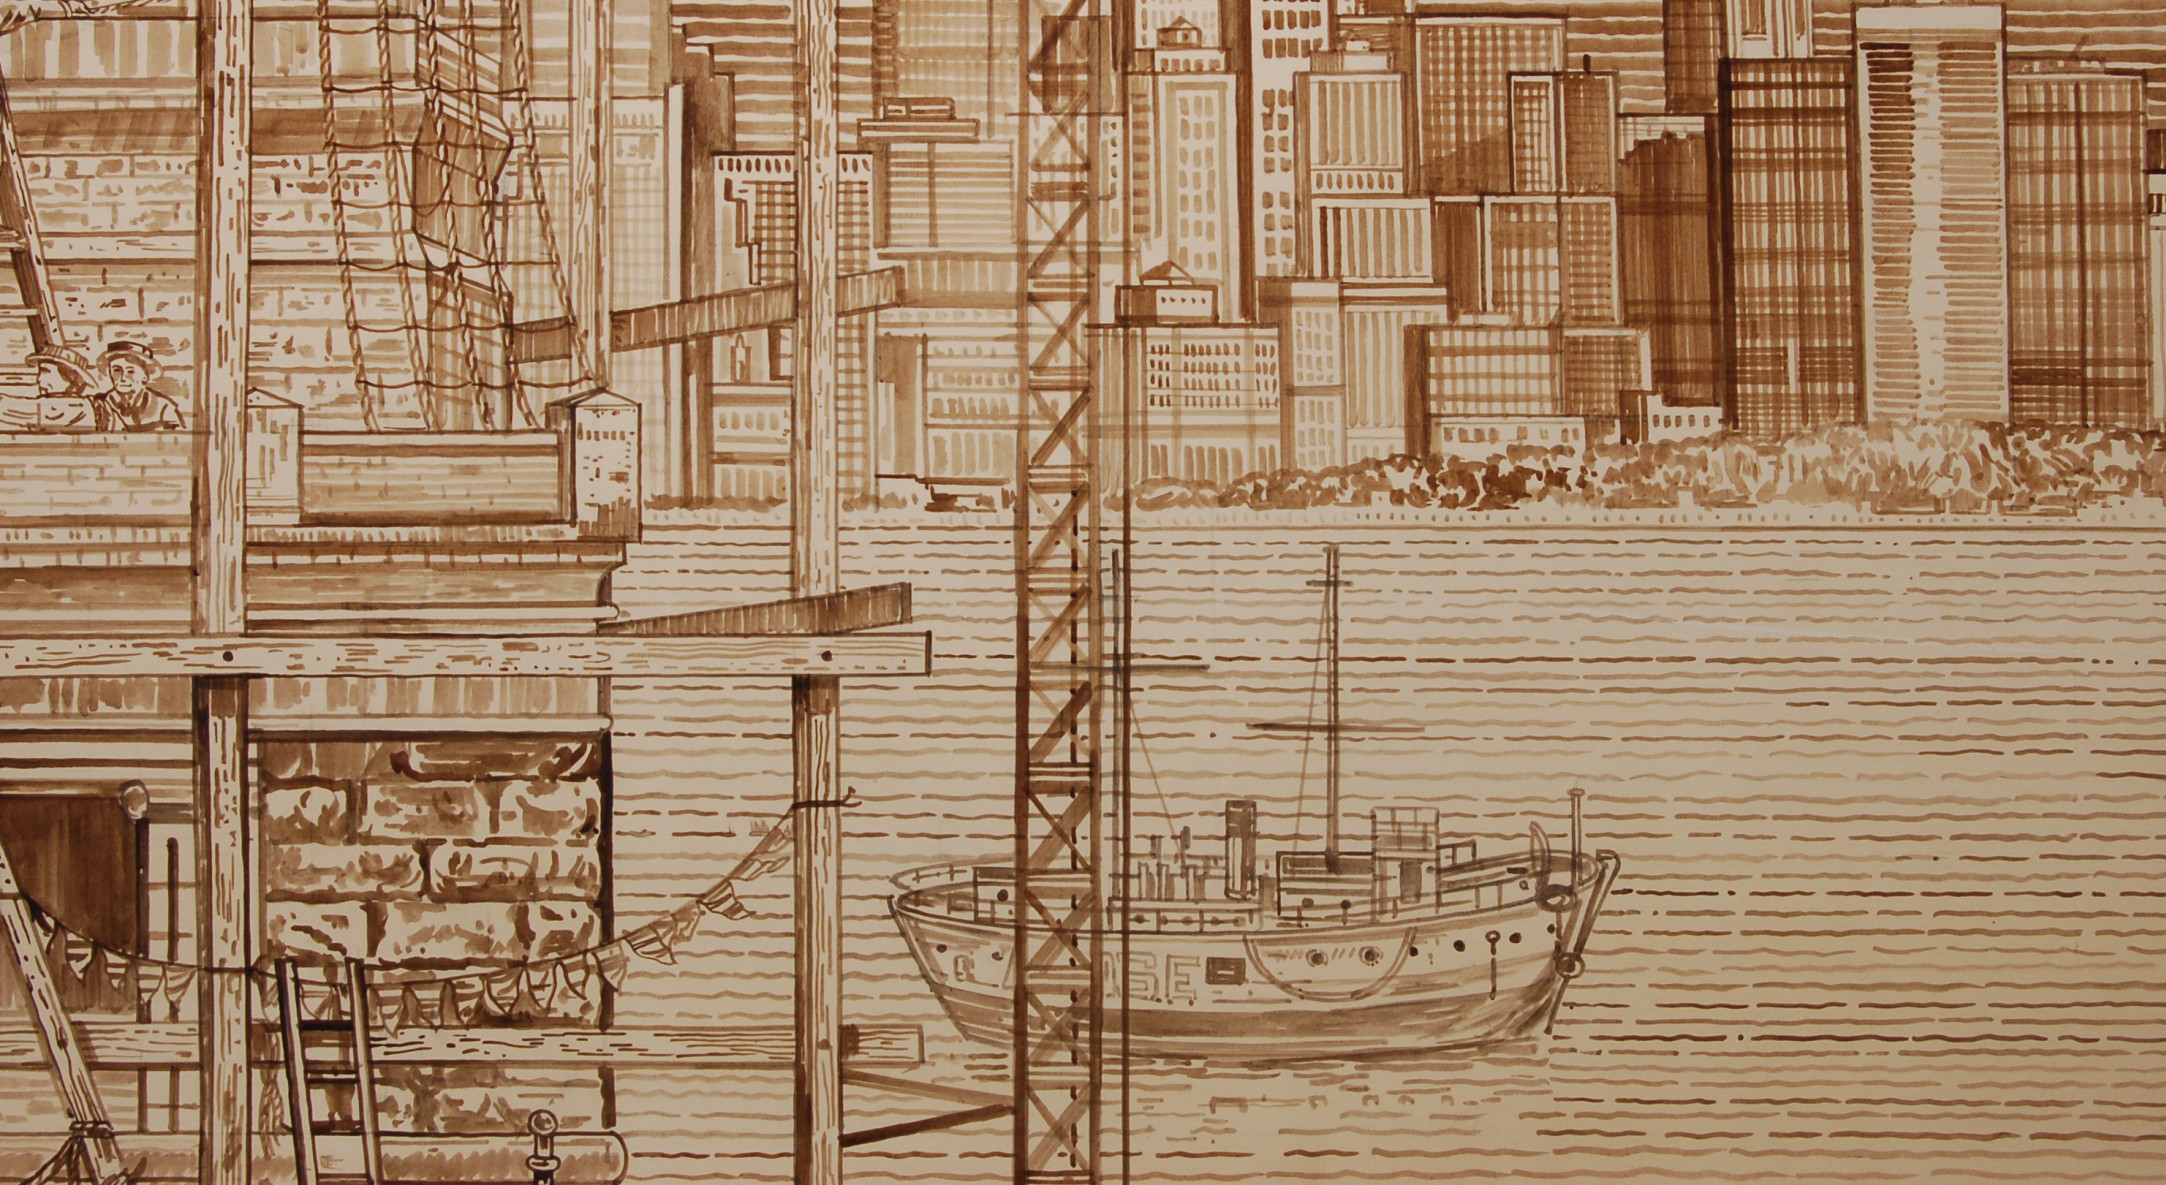 Detail of Adam Dant, Liberty, 2008, Ink on paper, 200.5 x 259 cm, 79 x 102.05 in